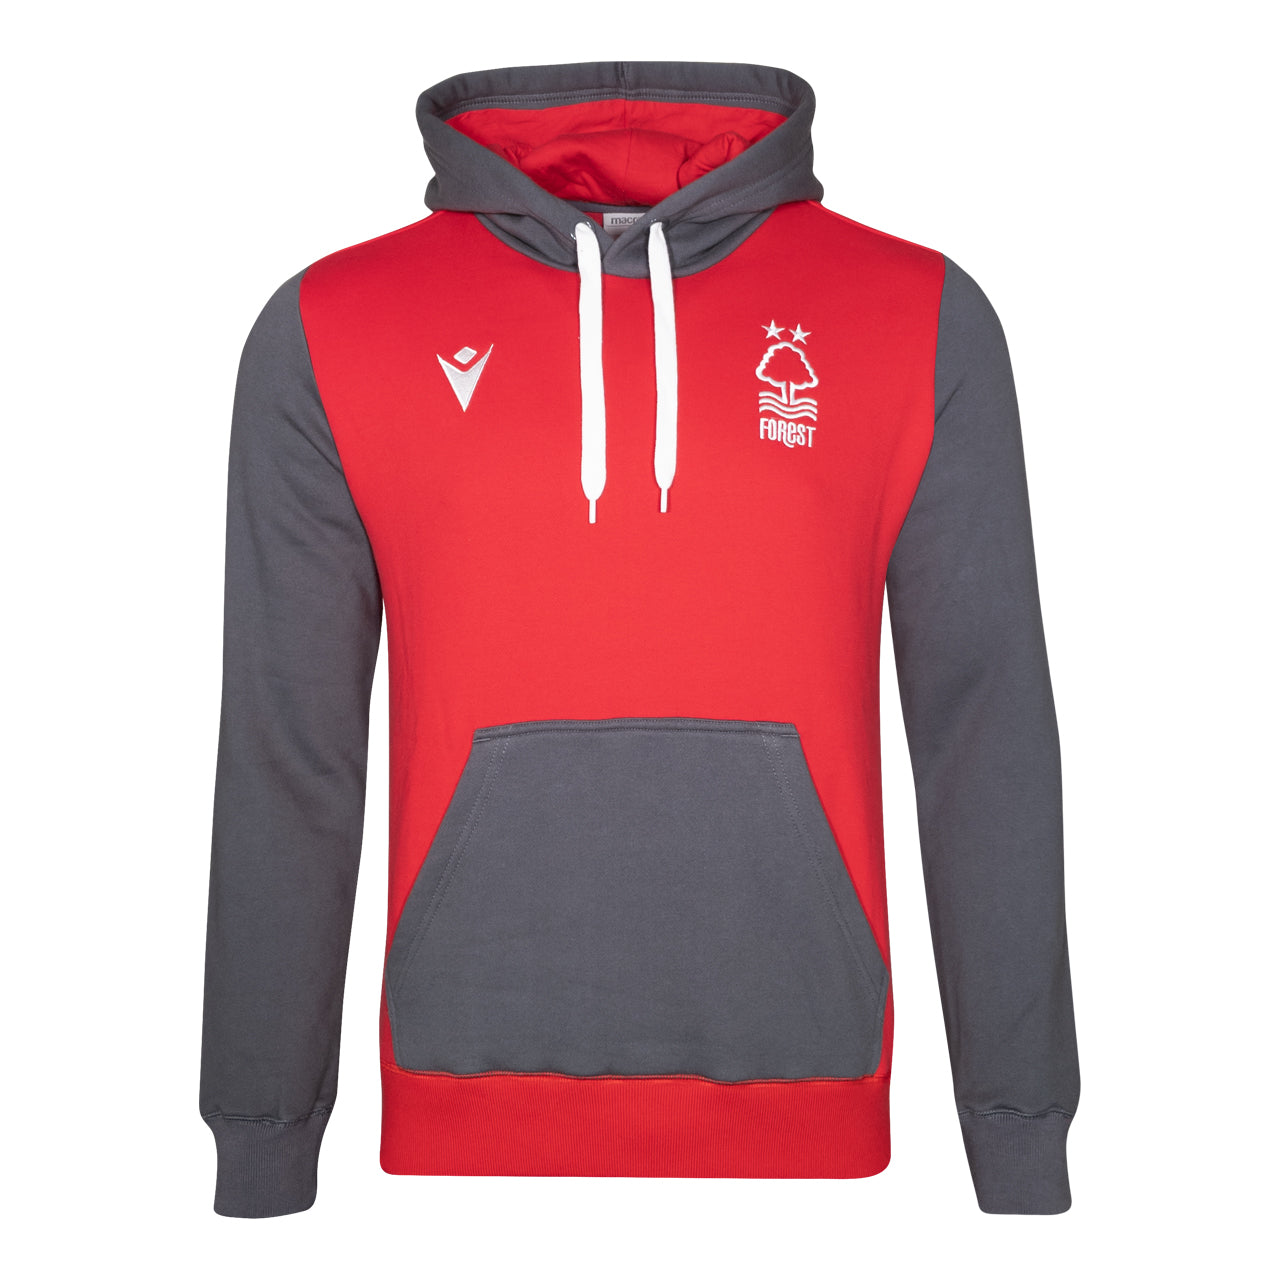 NFFC Mens Player Training Hoodie 19/20